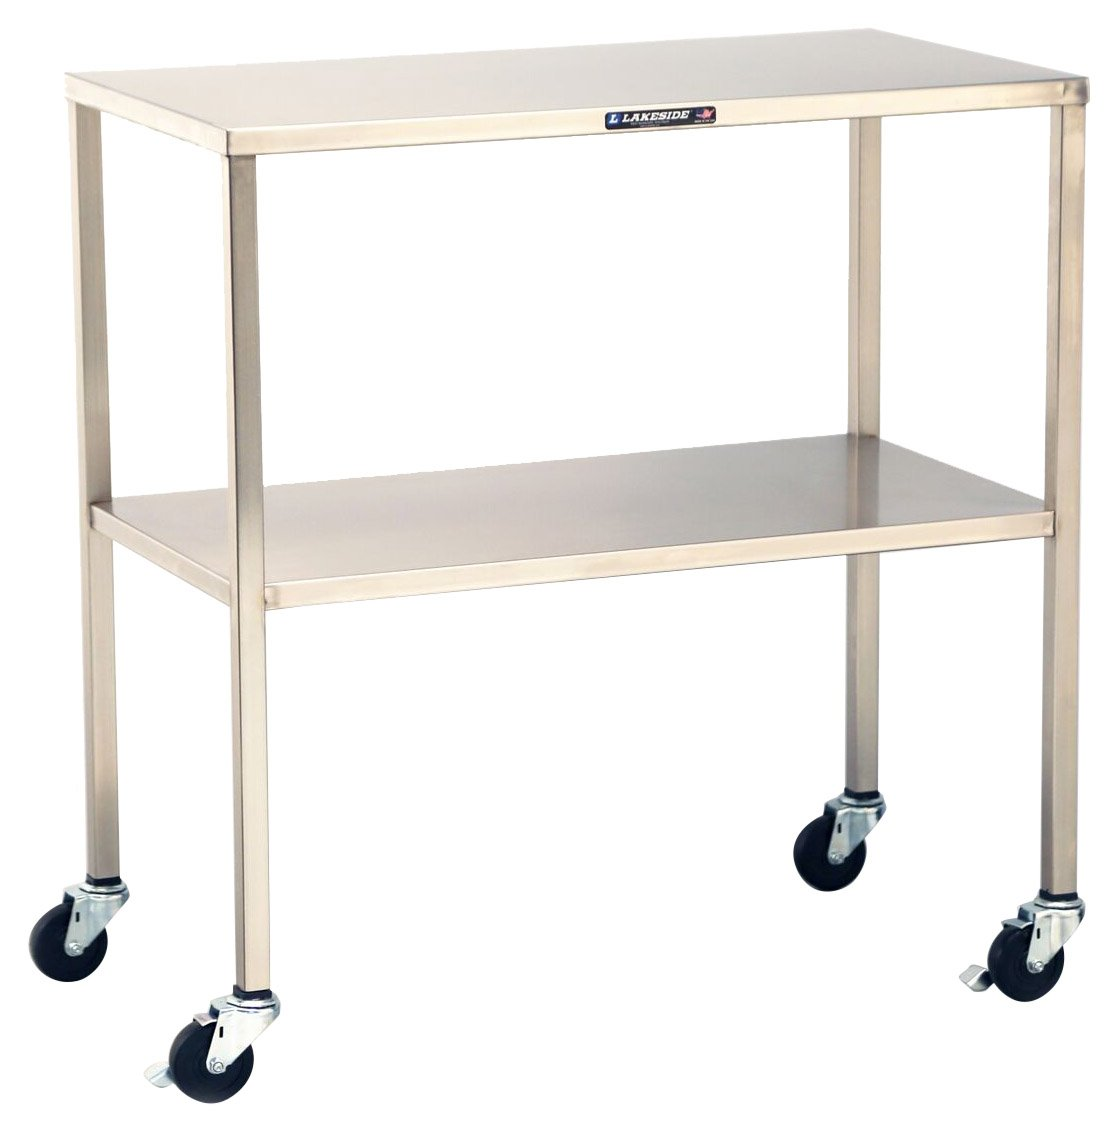 8355 Lakeside 8355 Mobile Stainless Steel Instrument Table with Shelf 33 x 18 x 34